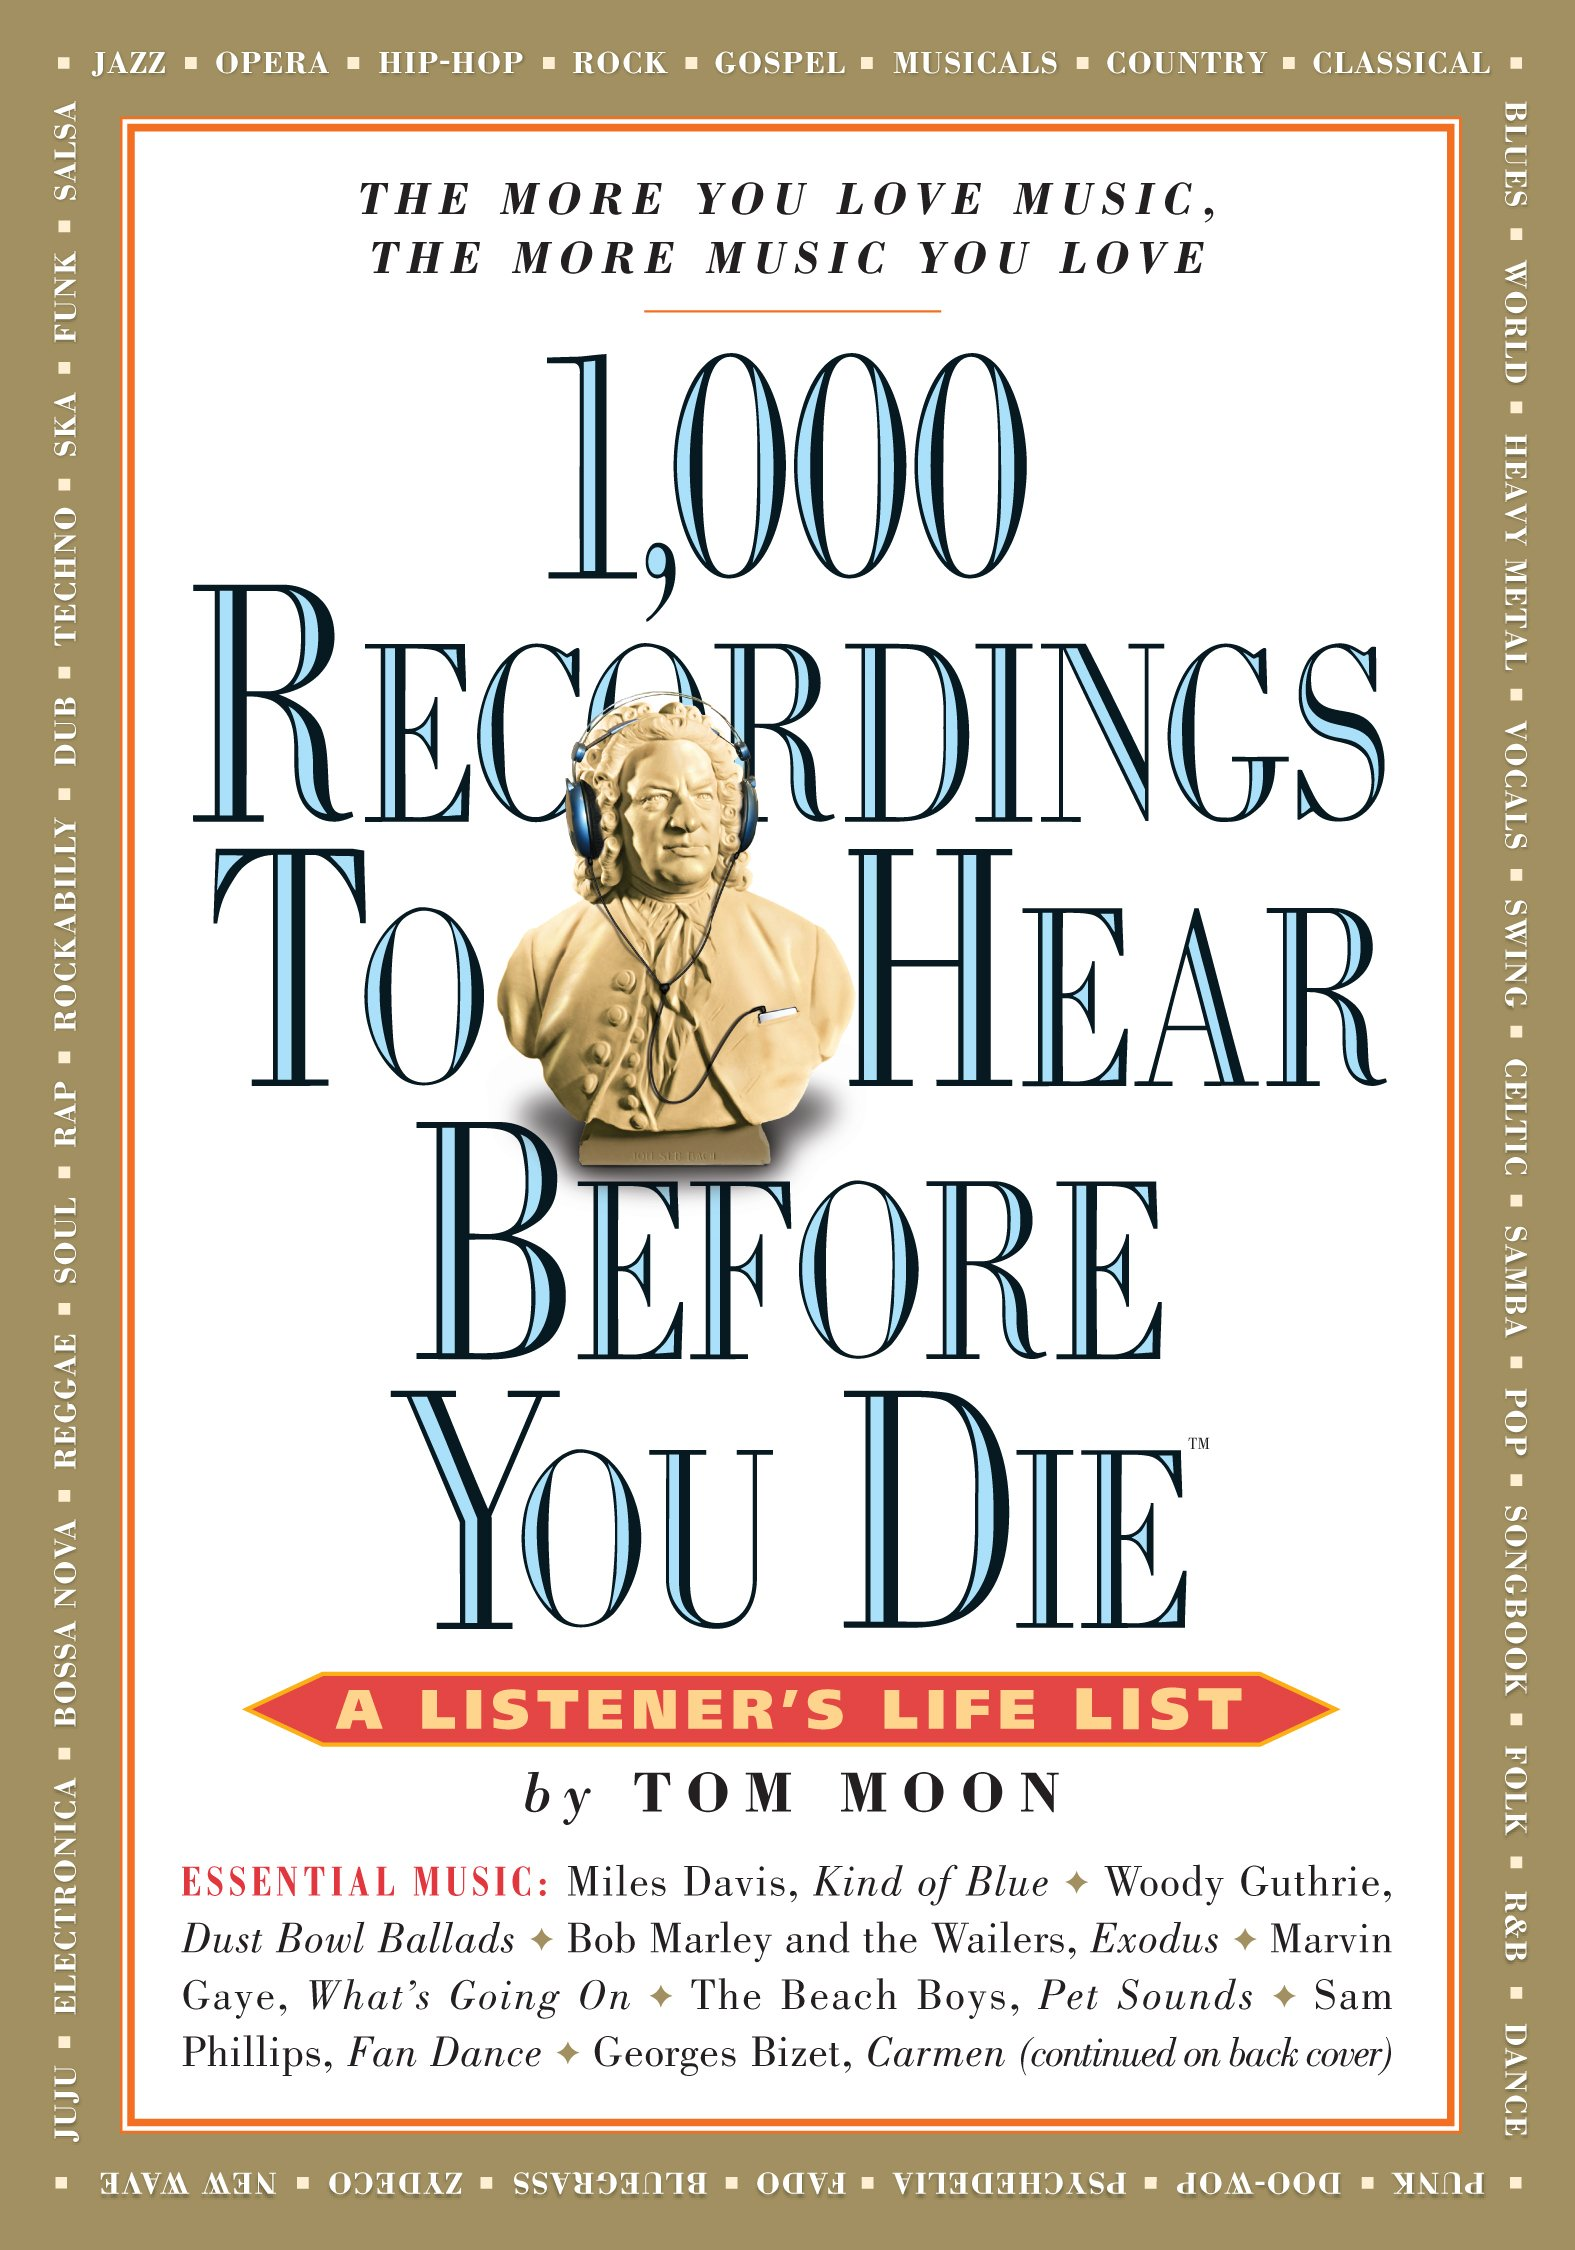 1, 000 Recordings to Hear Before You Die (1, 000 Before You Die): Tom Moon:  0019628139634: Amazon.com: Books